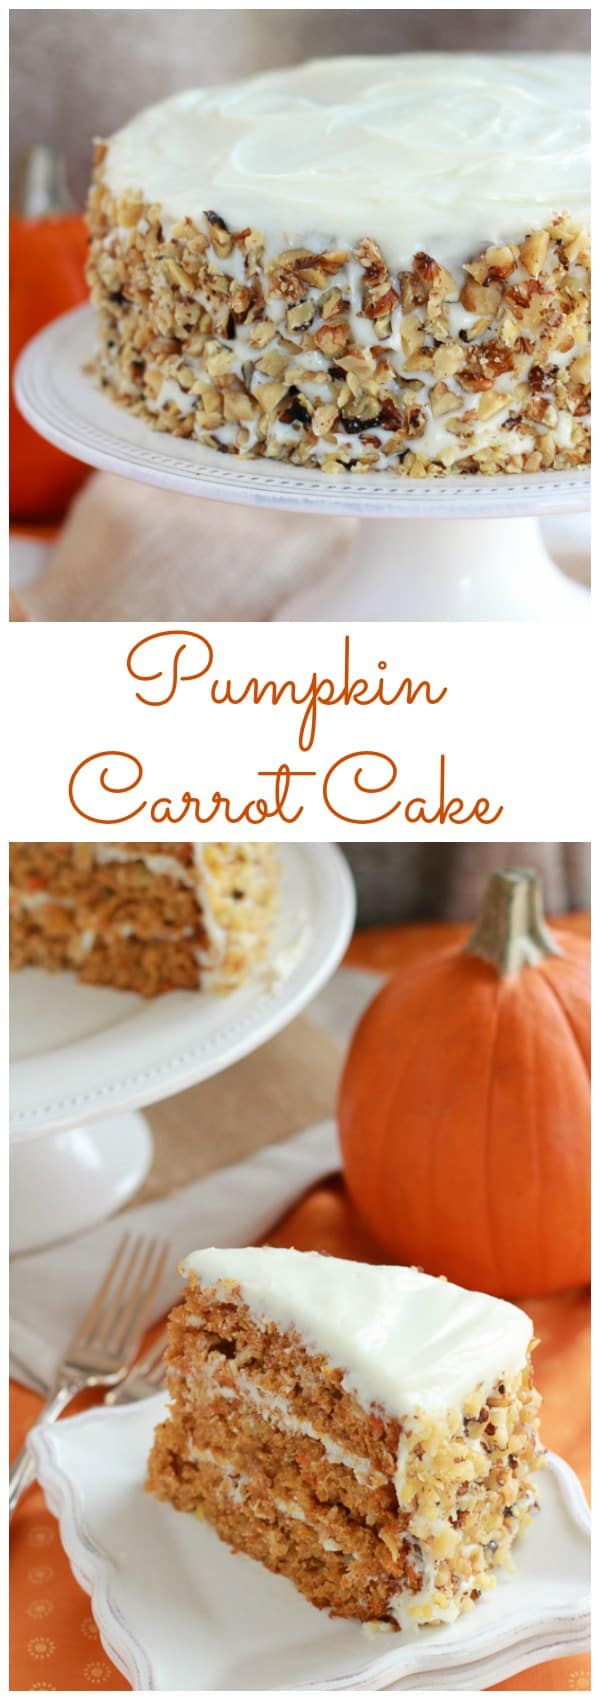 Carrot Cake with Cream Cheese Frosting - A moist layer cake filled ...